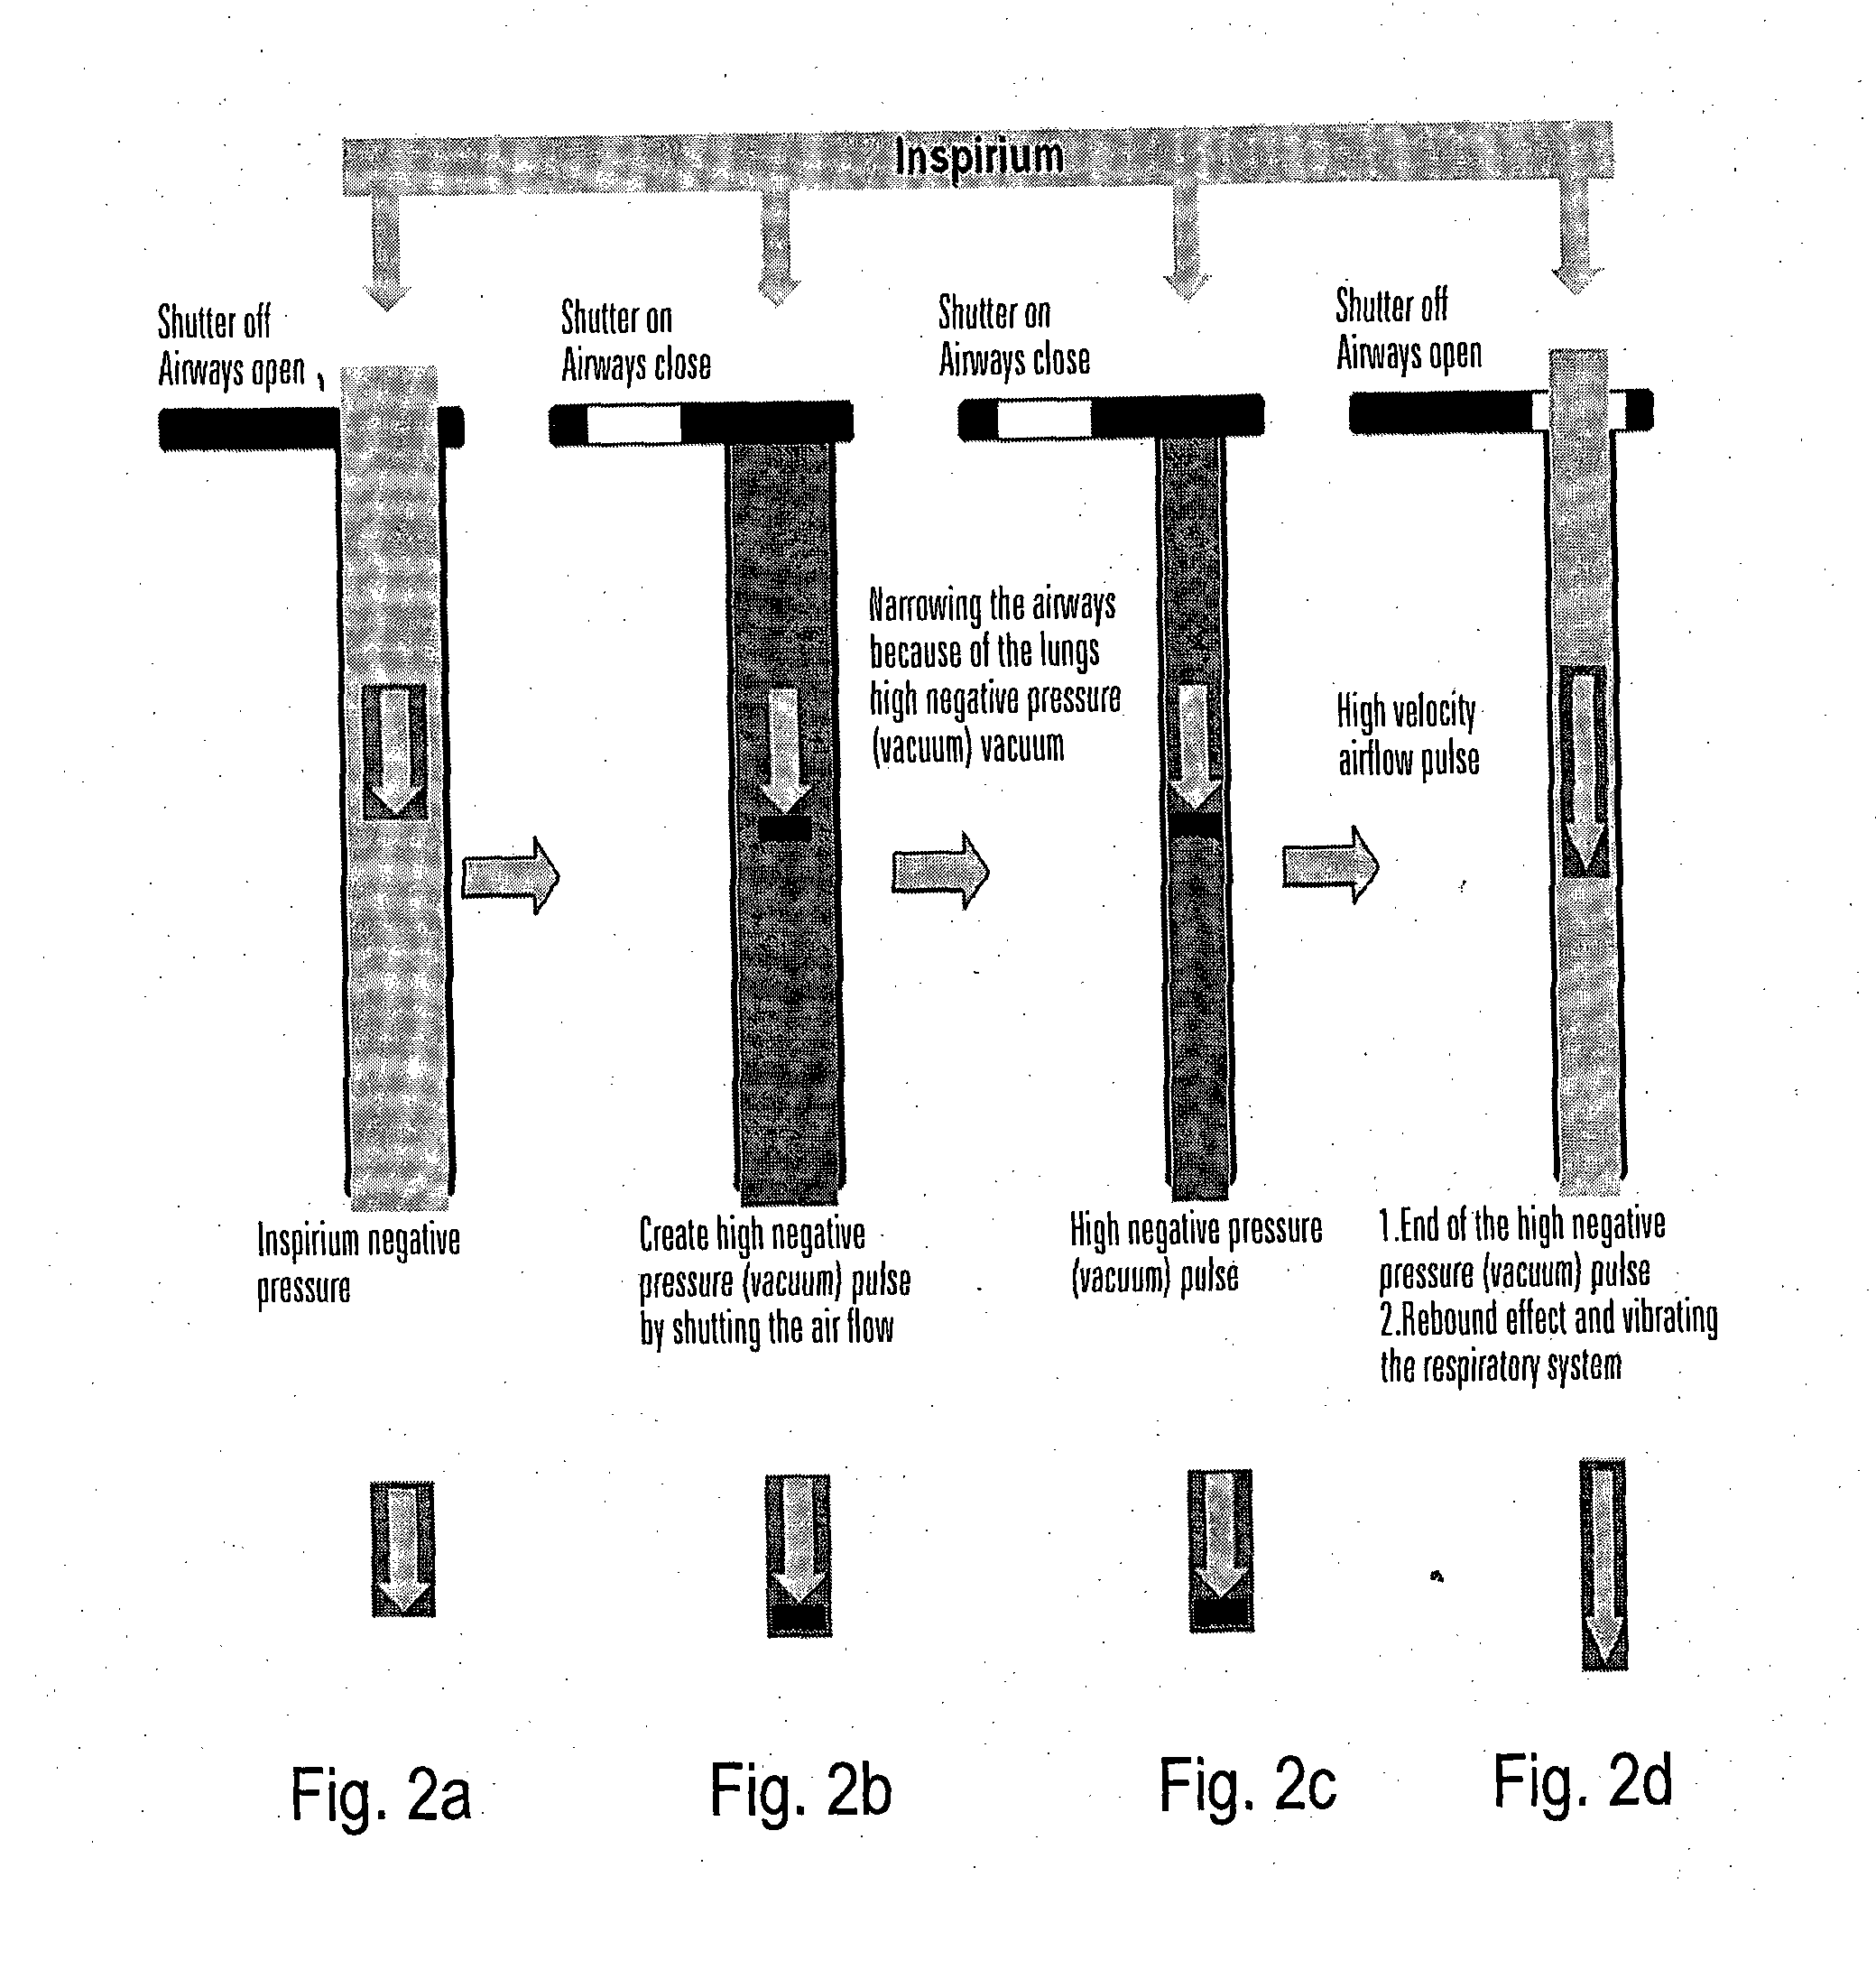 US20120247466A1 - Drug Delivery Device - Google Patents